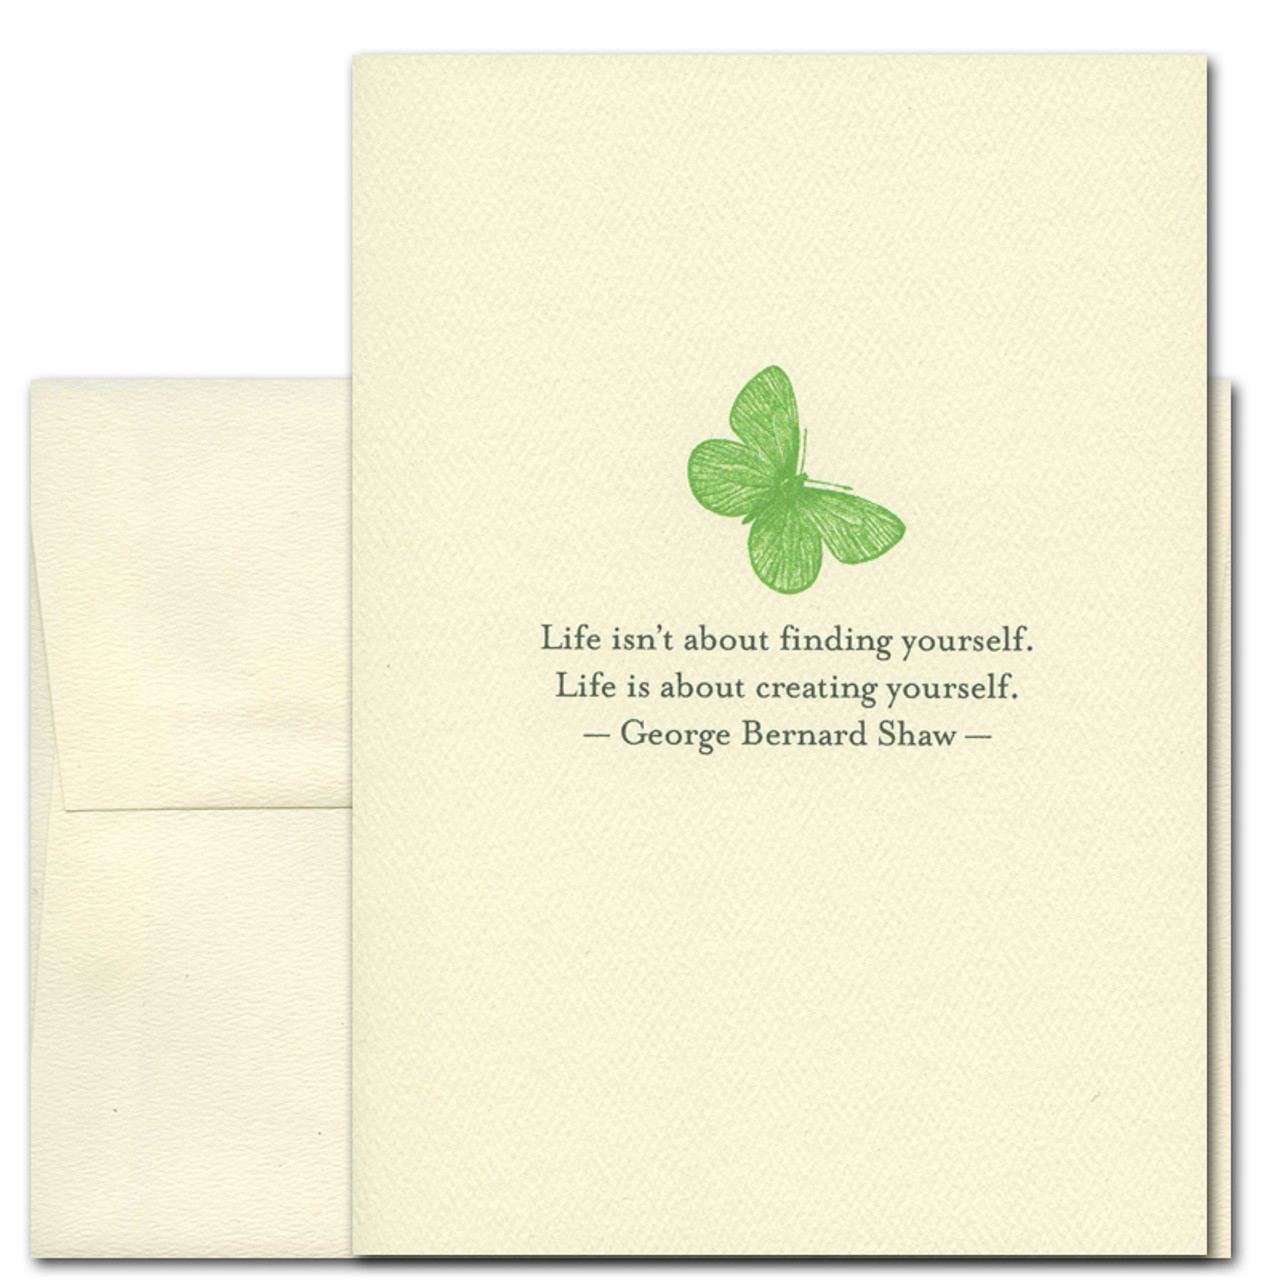 "Quotation Card ""Creating Yourself: Shaw"" Cover shows green vintage illustration of a butterfly with a quote from George Bernard Shaw reading ""Life isn't about finding yourself. Life is about creating yourself."""